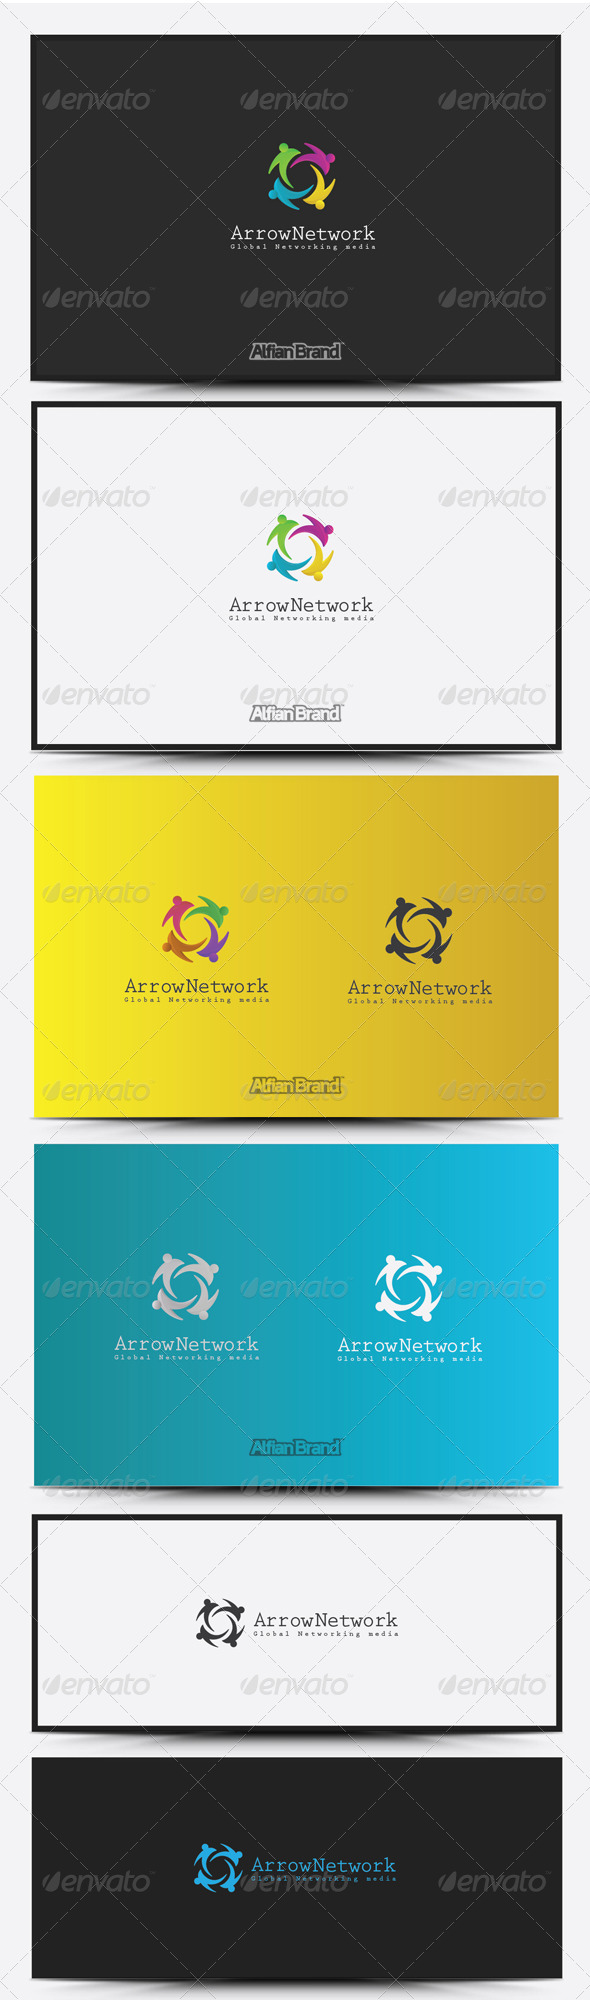 GraphicRiver Arrow Networking Logo 8516945